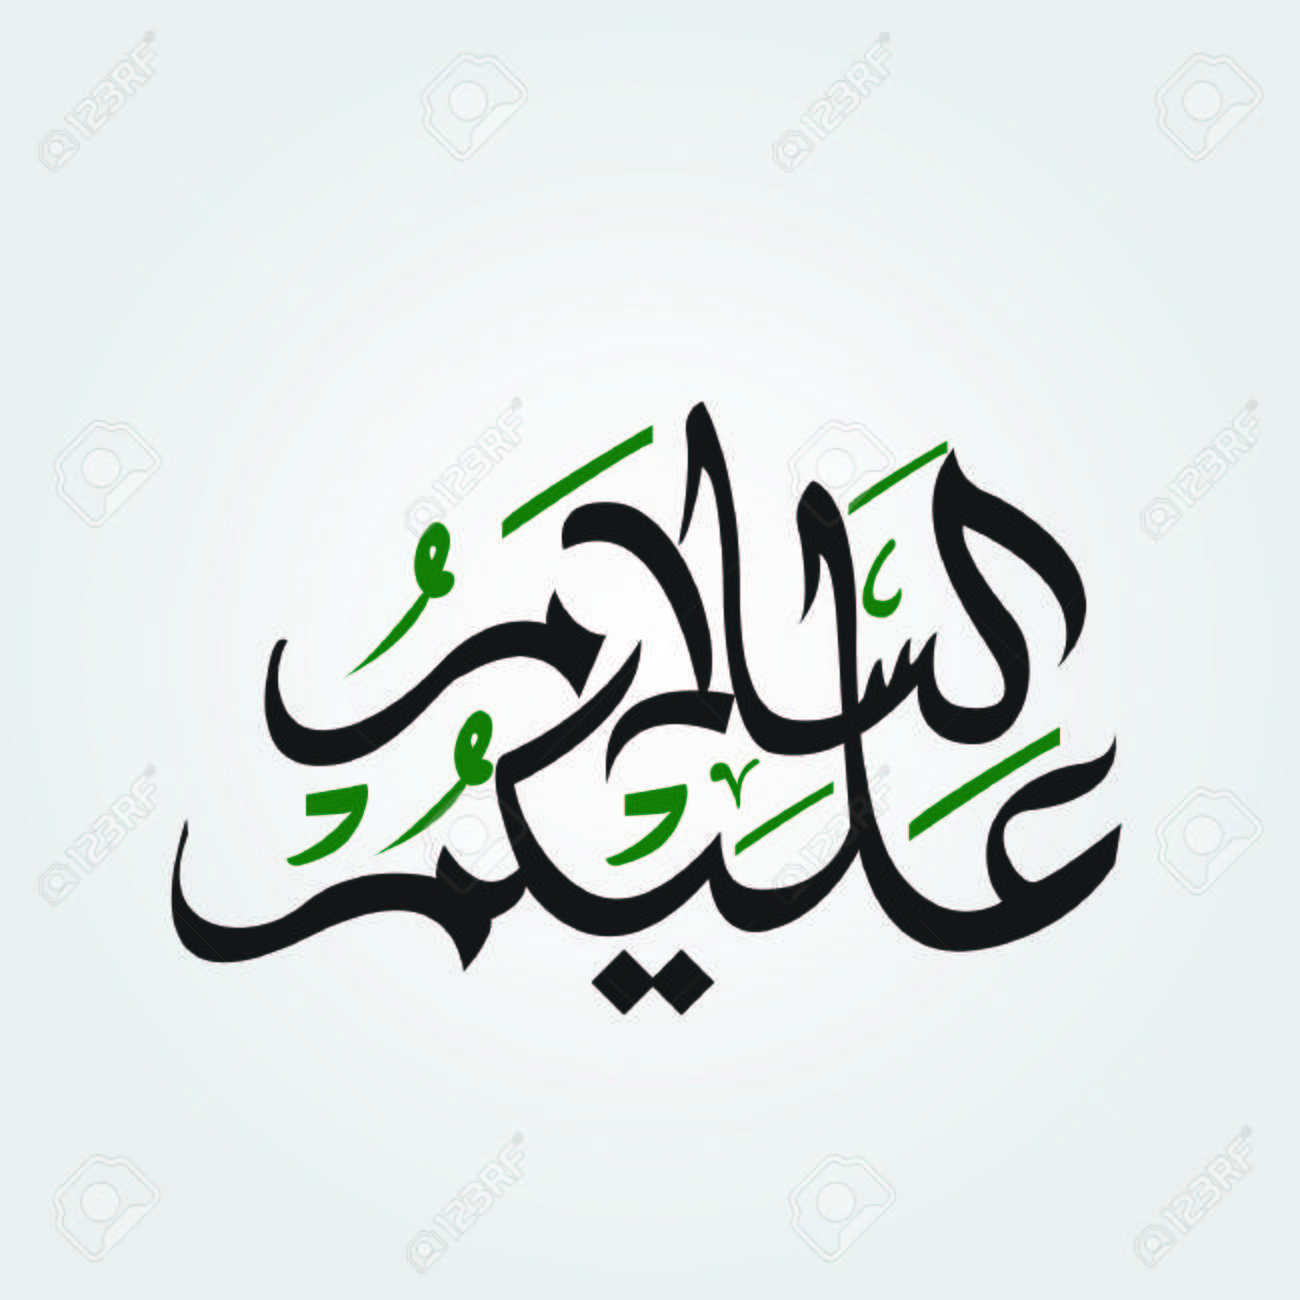 Arabic Calligraphy Meaning Peace Be Upon You Royalty Free Cliparts Vectors And Stock Illustration Image 69024032